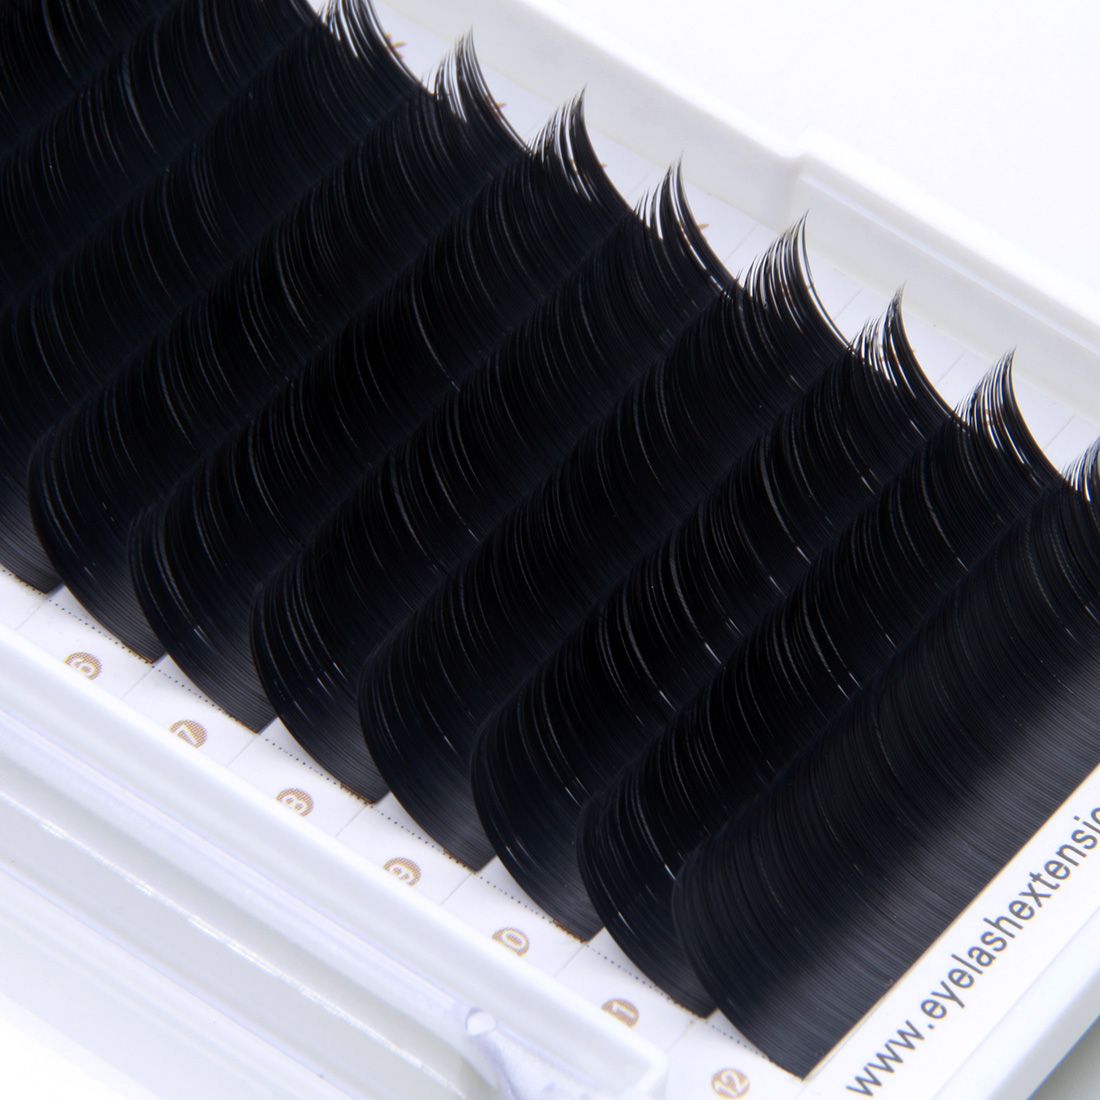 aae5b022ced Real Soft Faux Mink Lashes Glossy or Matte Ellipse Flat False Eyelash  Extensions